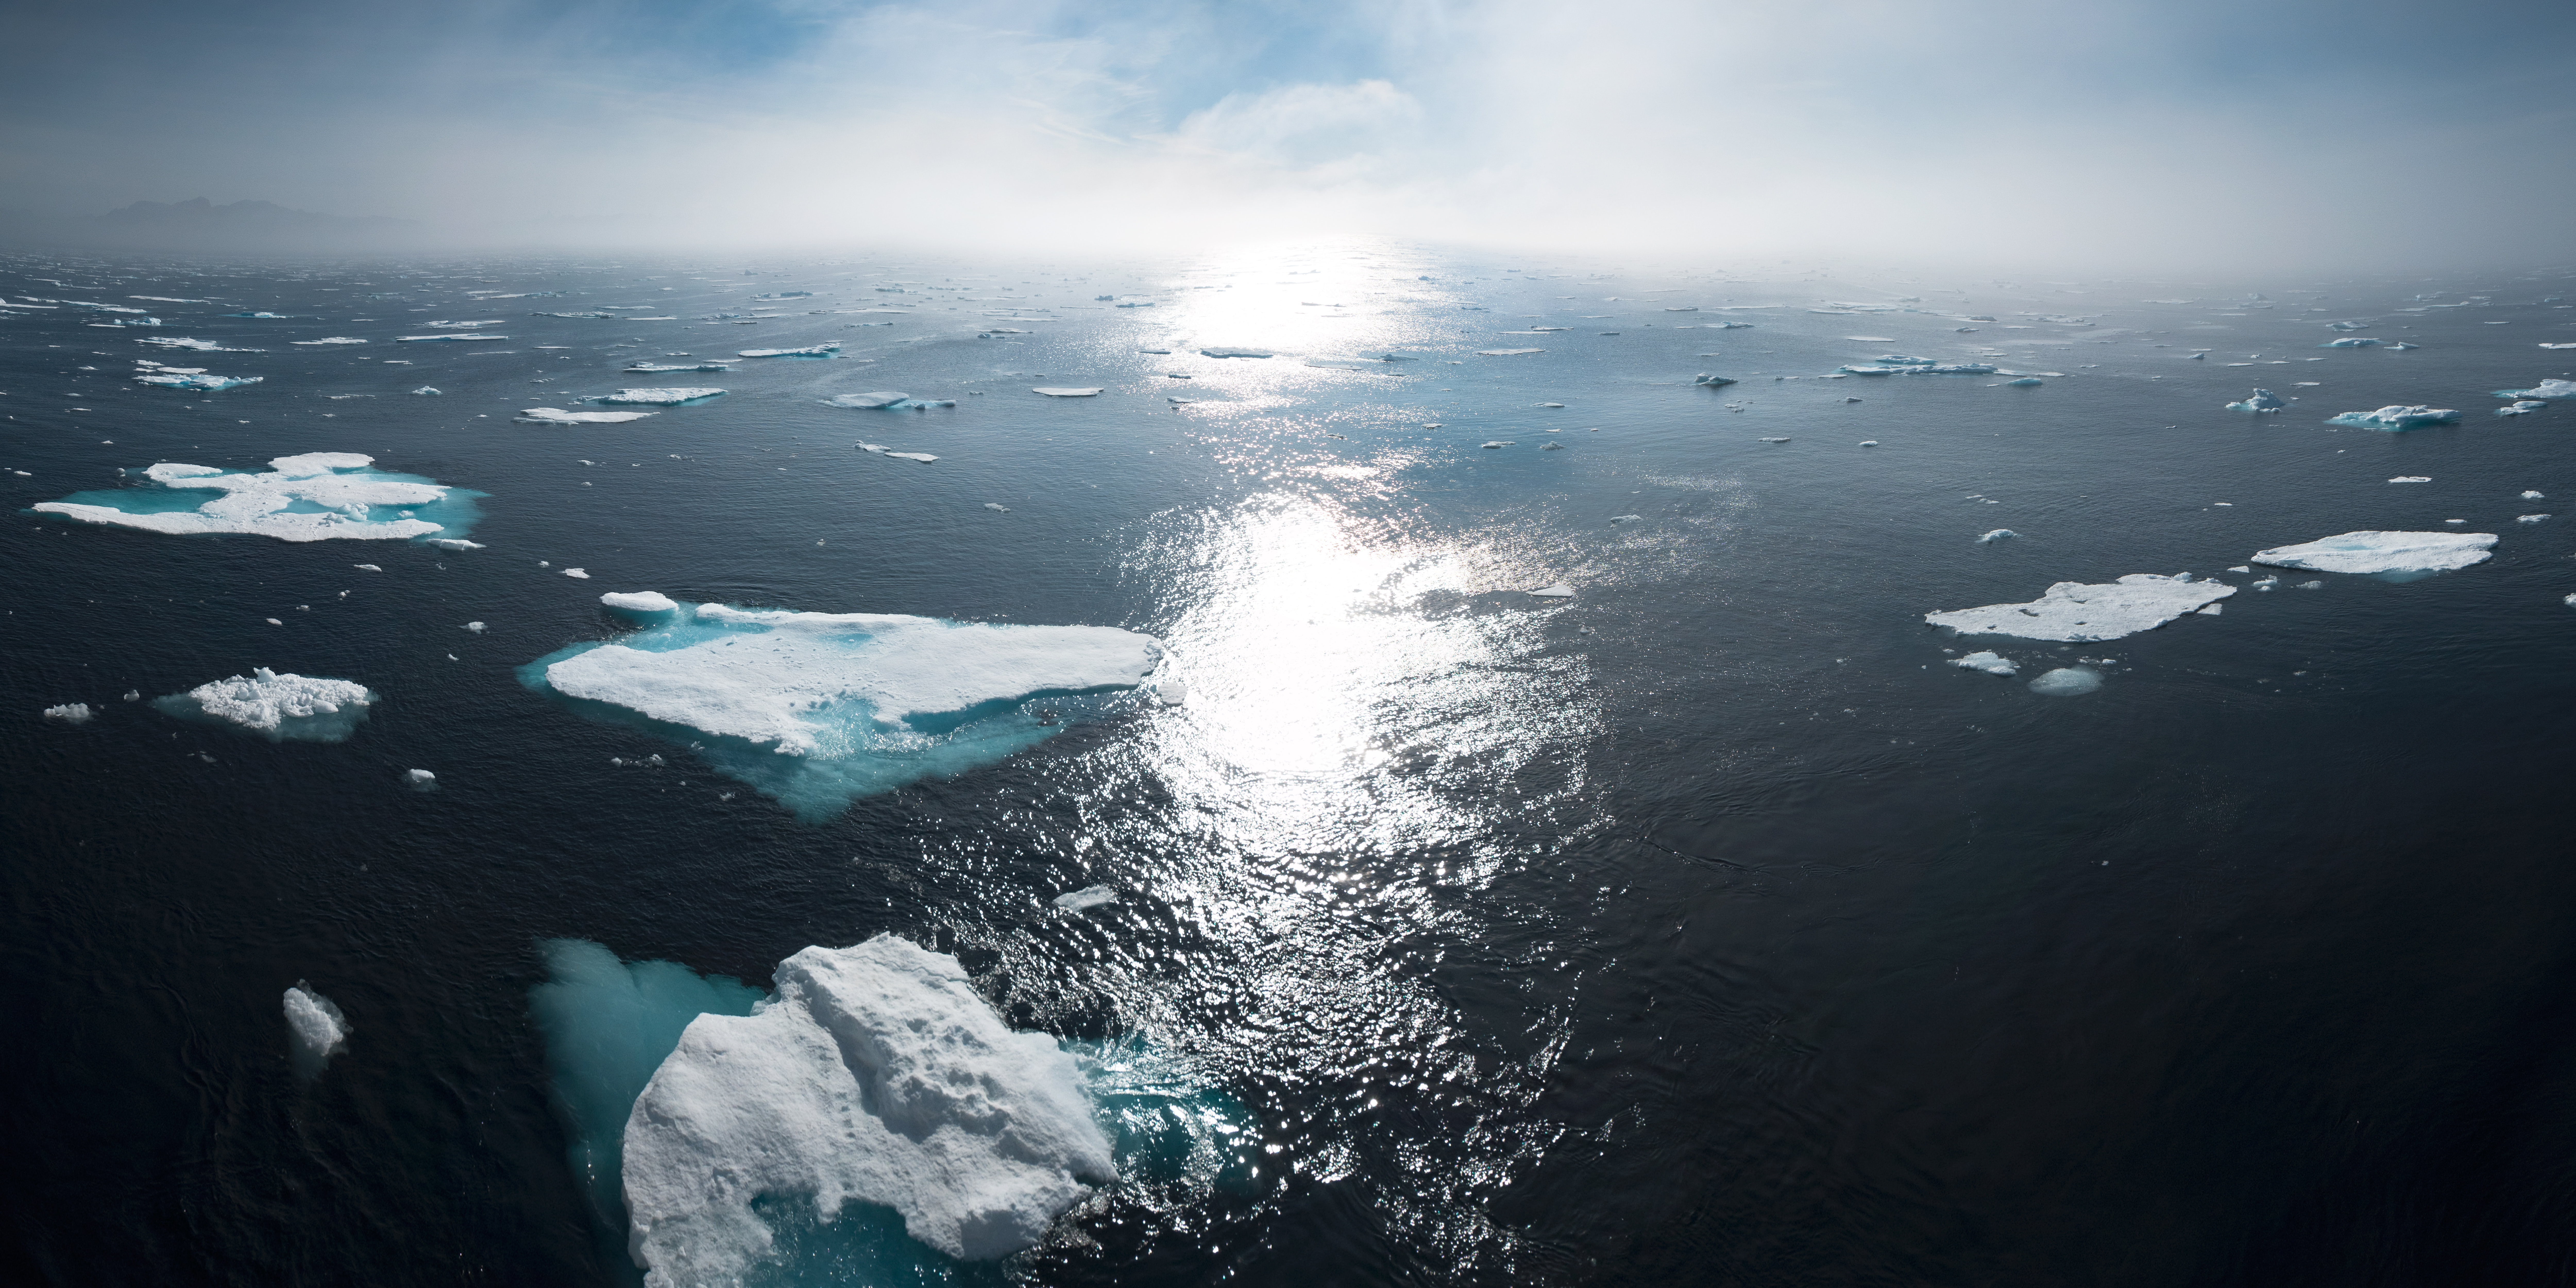 An aerial shot of icebergs floating in water, representing climate change